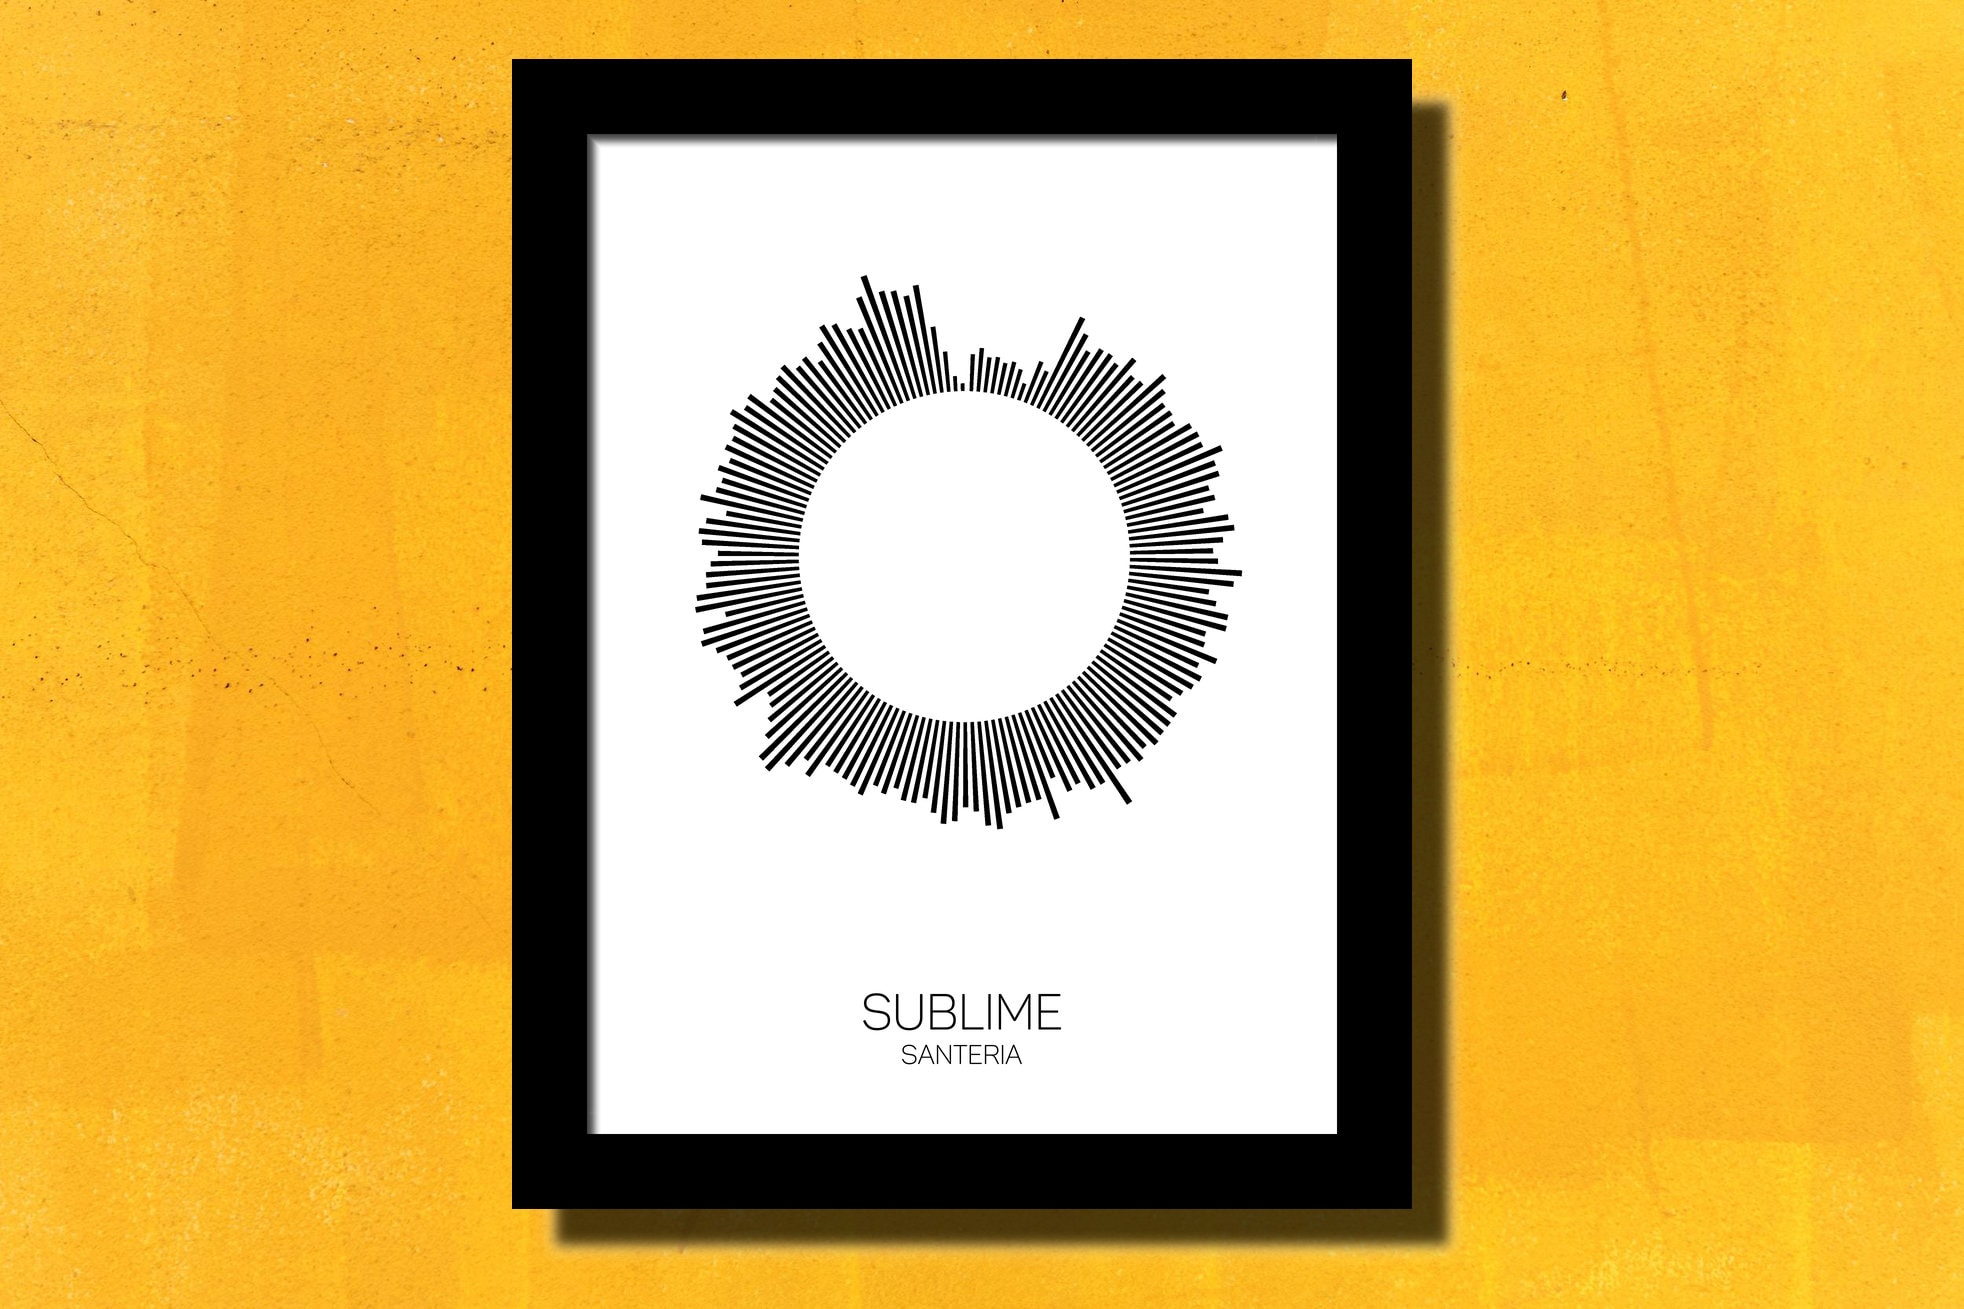 Sublime Santeria Poster Soundwave Art Music Art Sublime Poster | Etsy